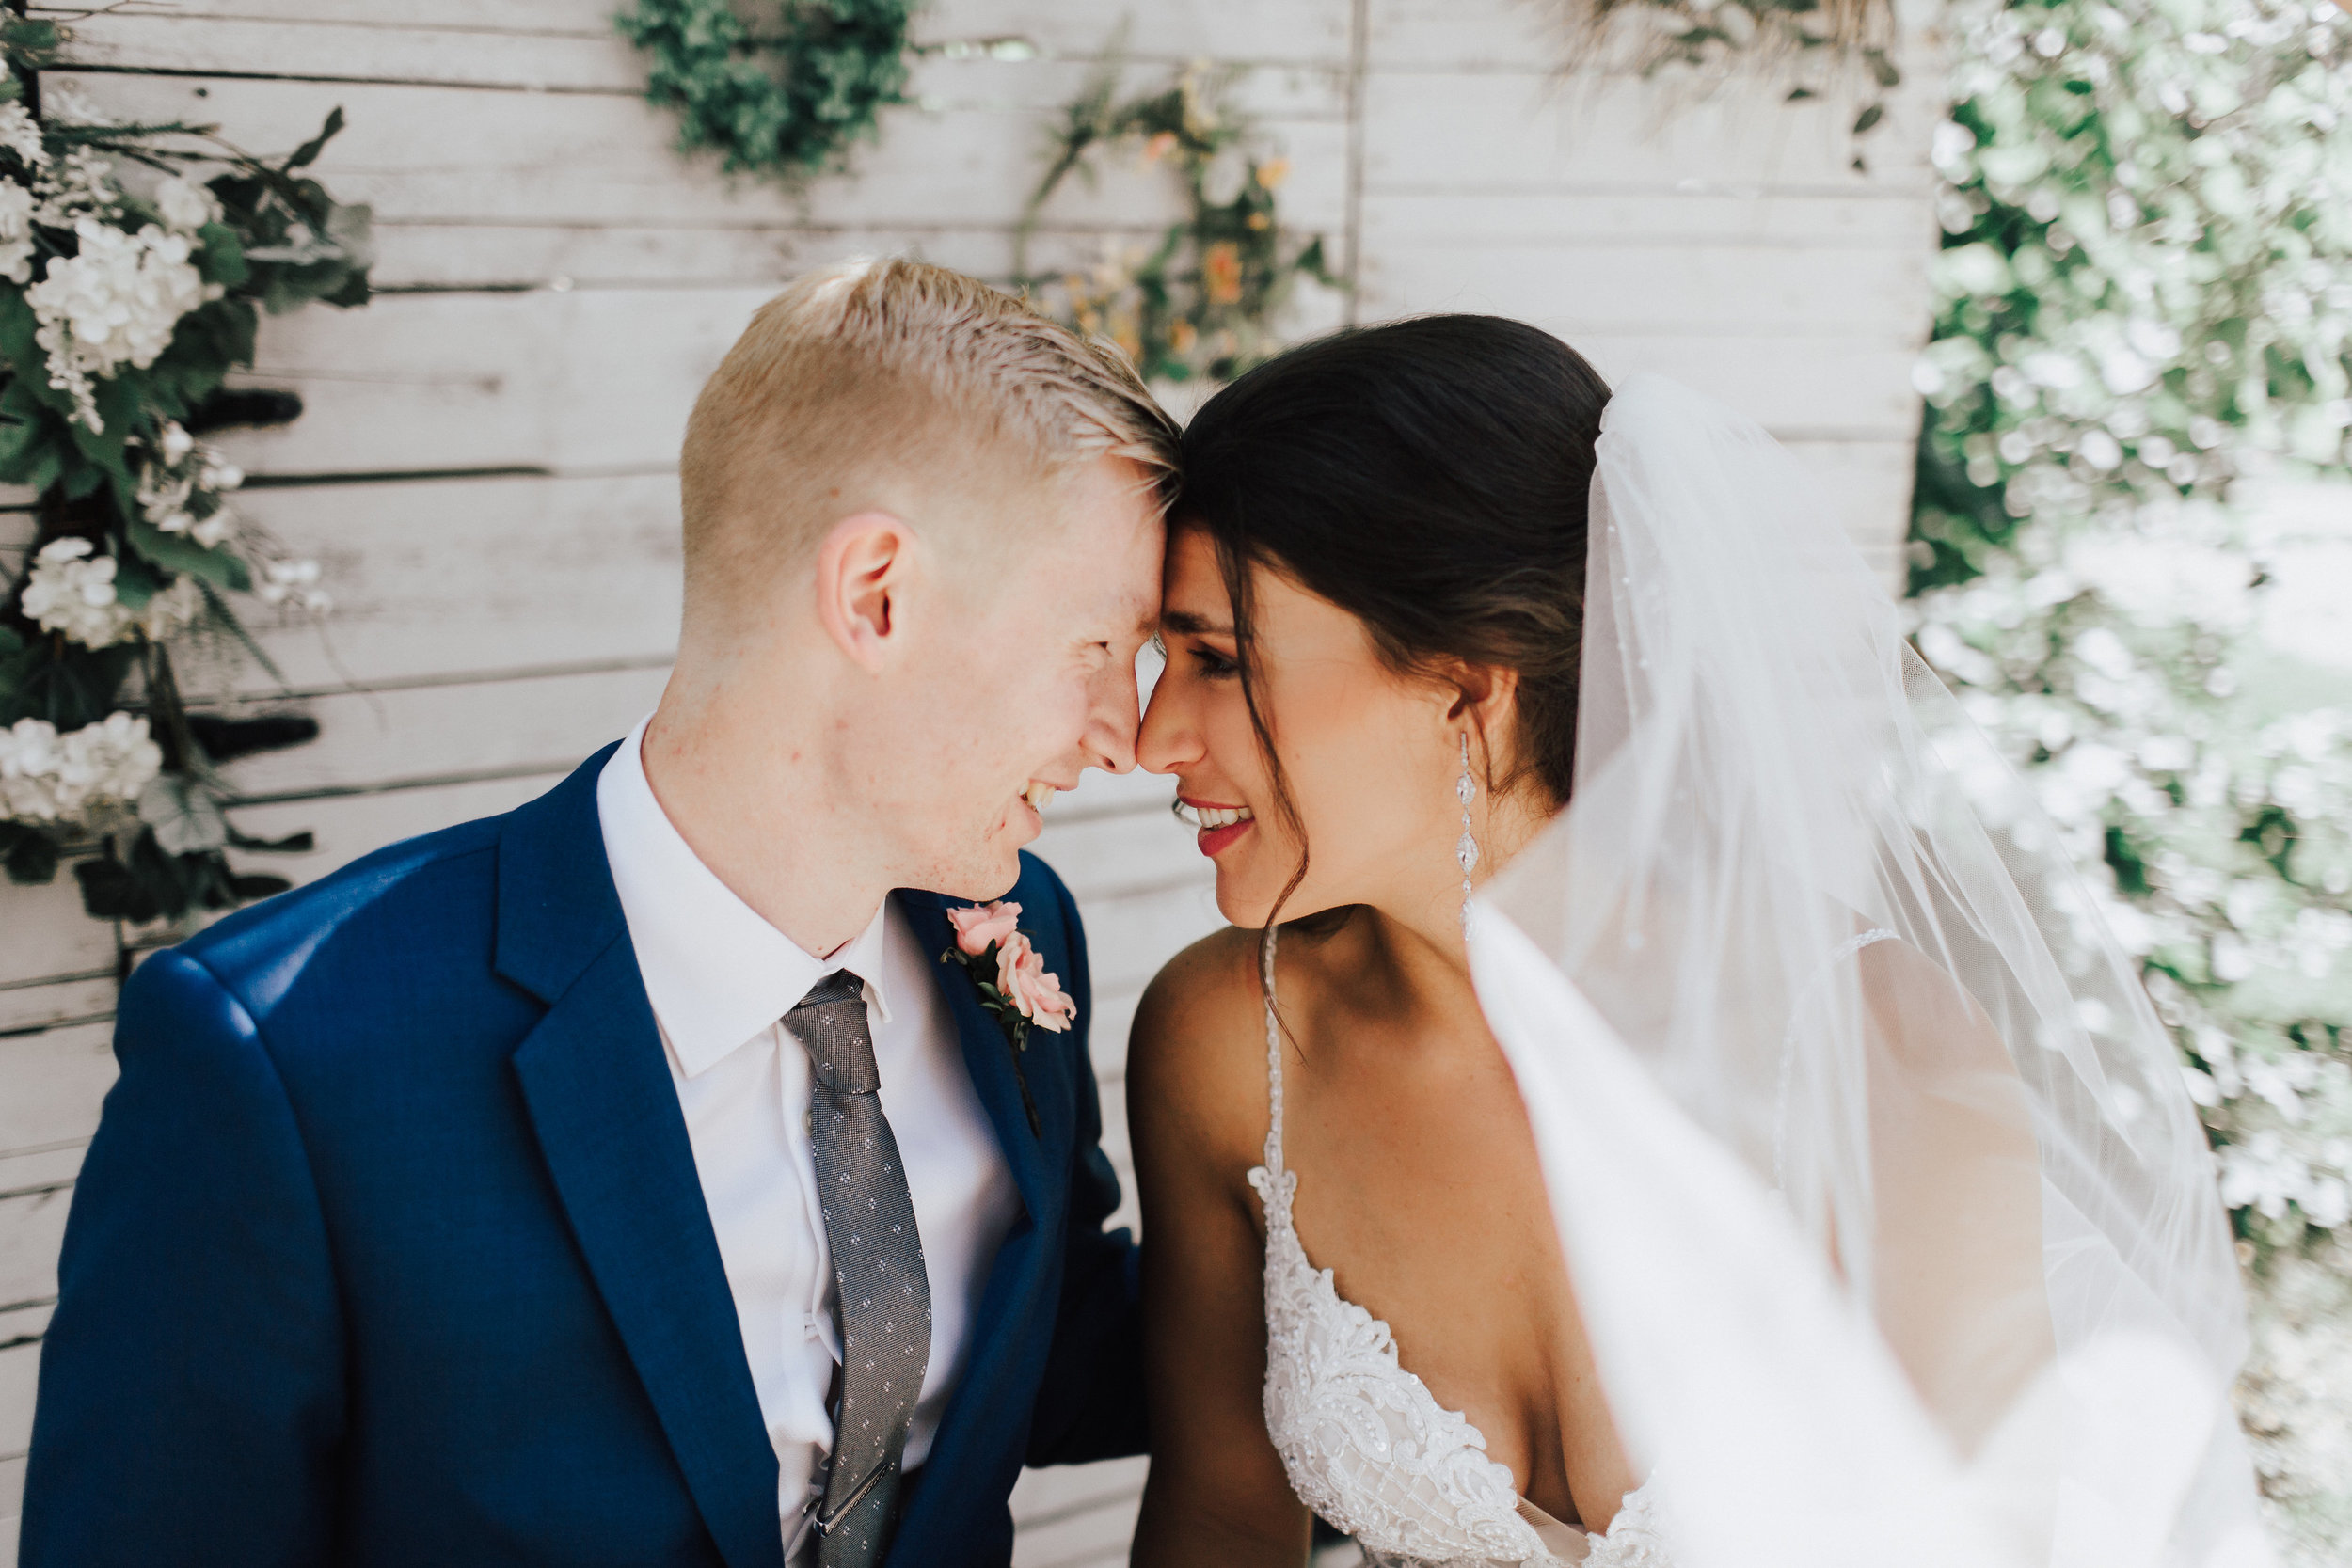 Nikita & Matthew's Bright & Airy Summer Wedding